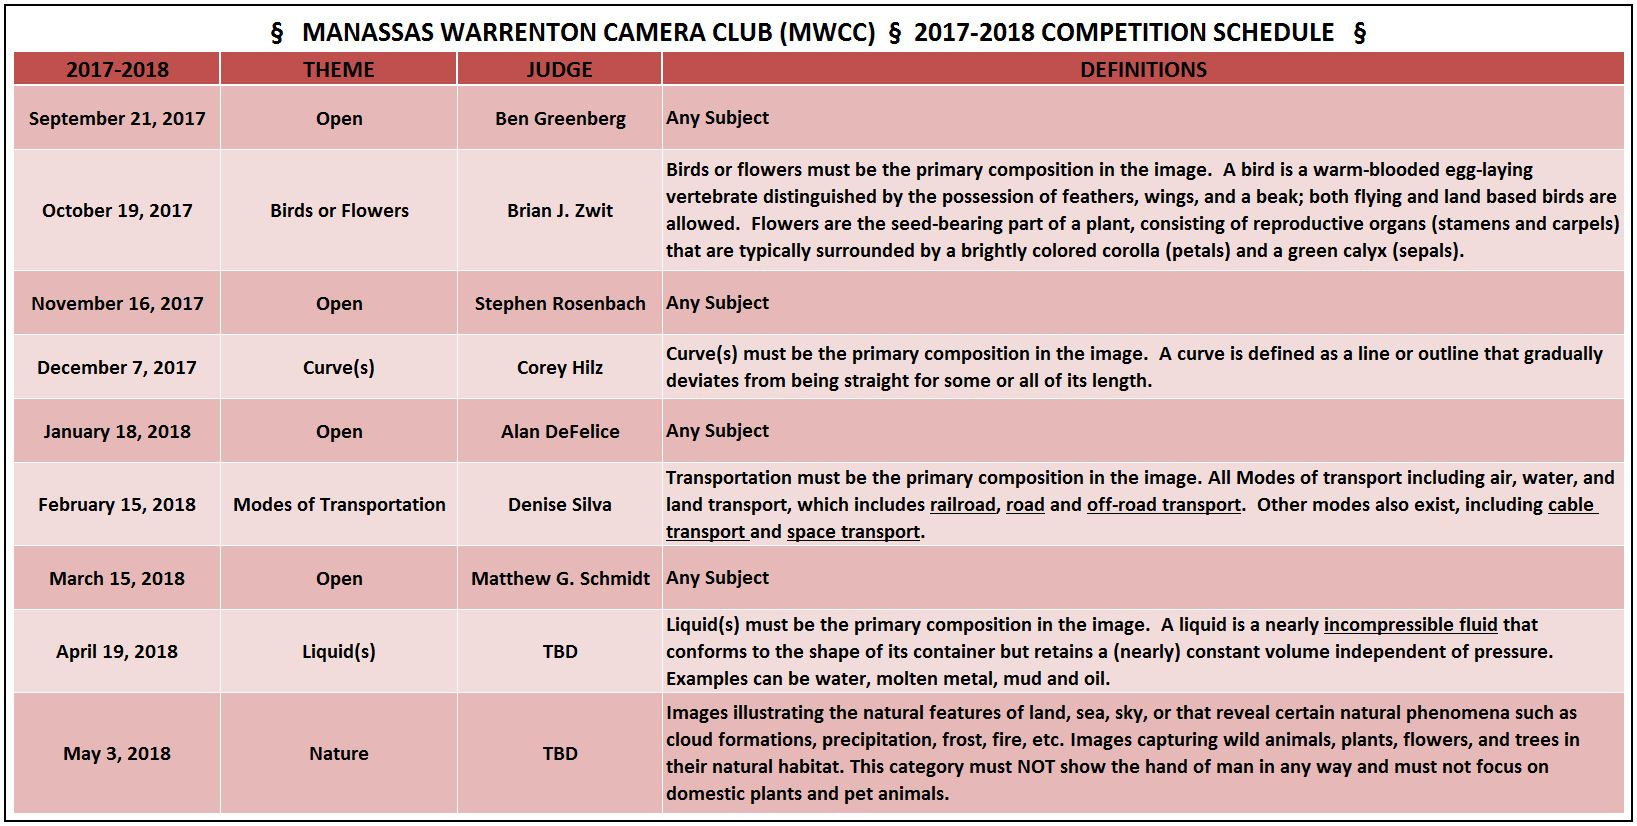 MWCC Competition Schedule 2017-2018